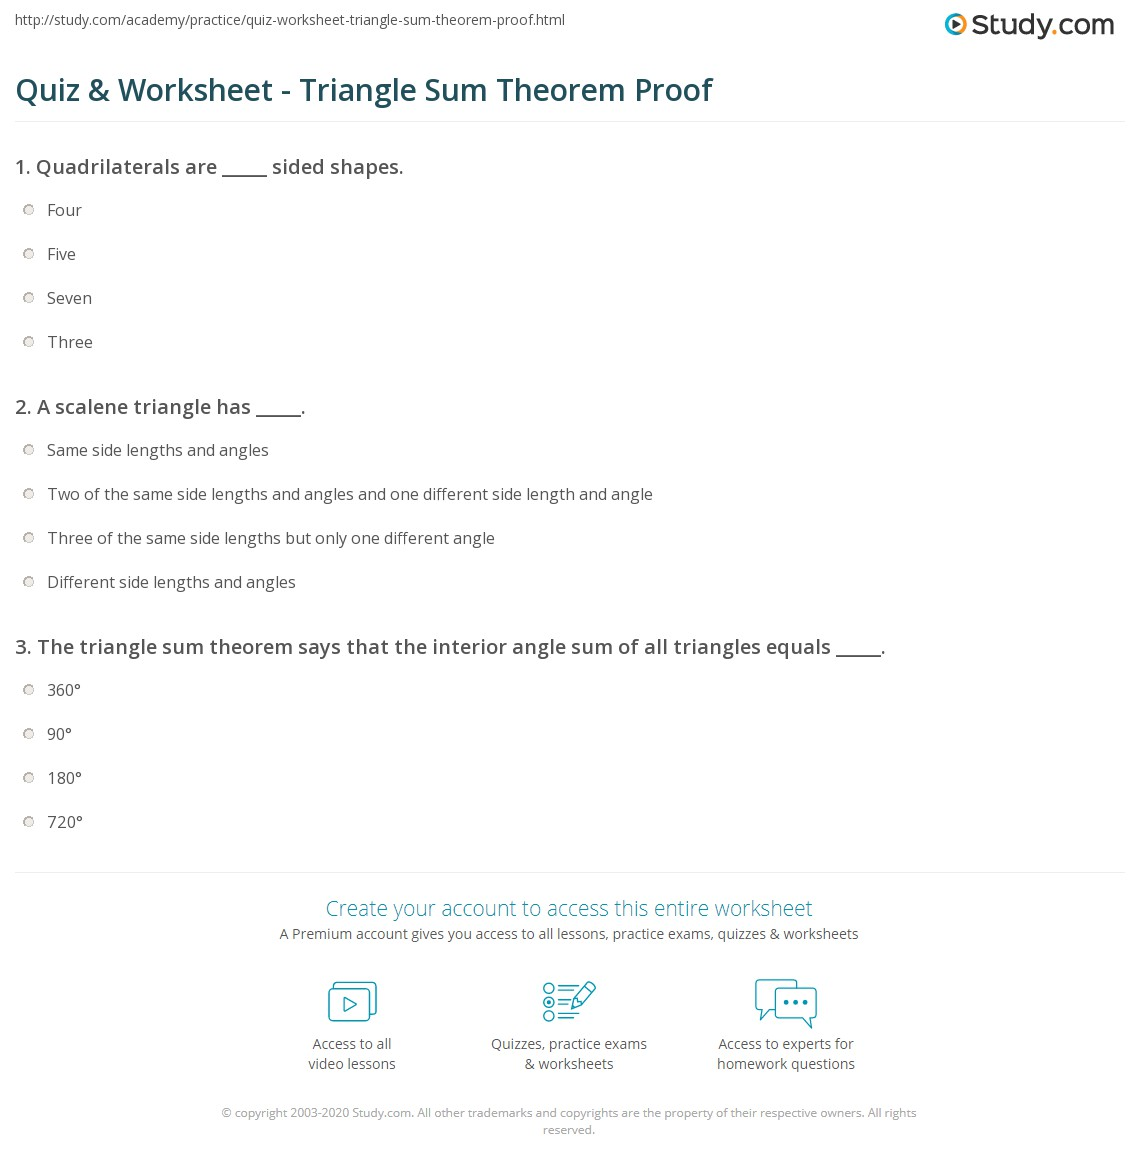 quiz worksheet triangle sum theorem proof. Black Bedroom Furniture Sets. Home Design Ideas